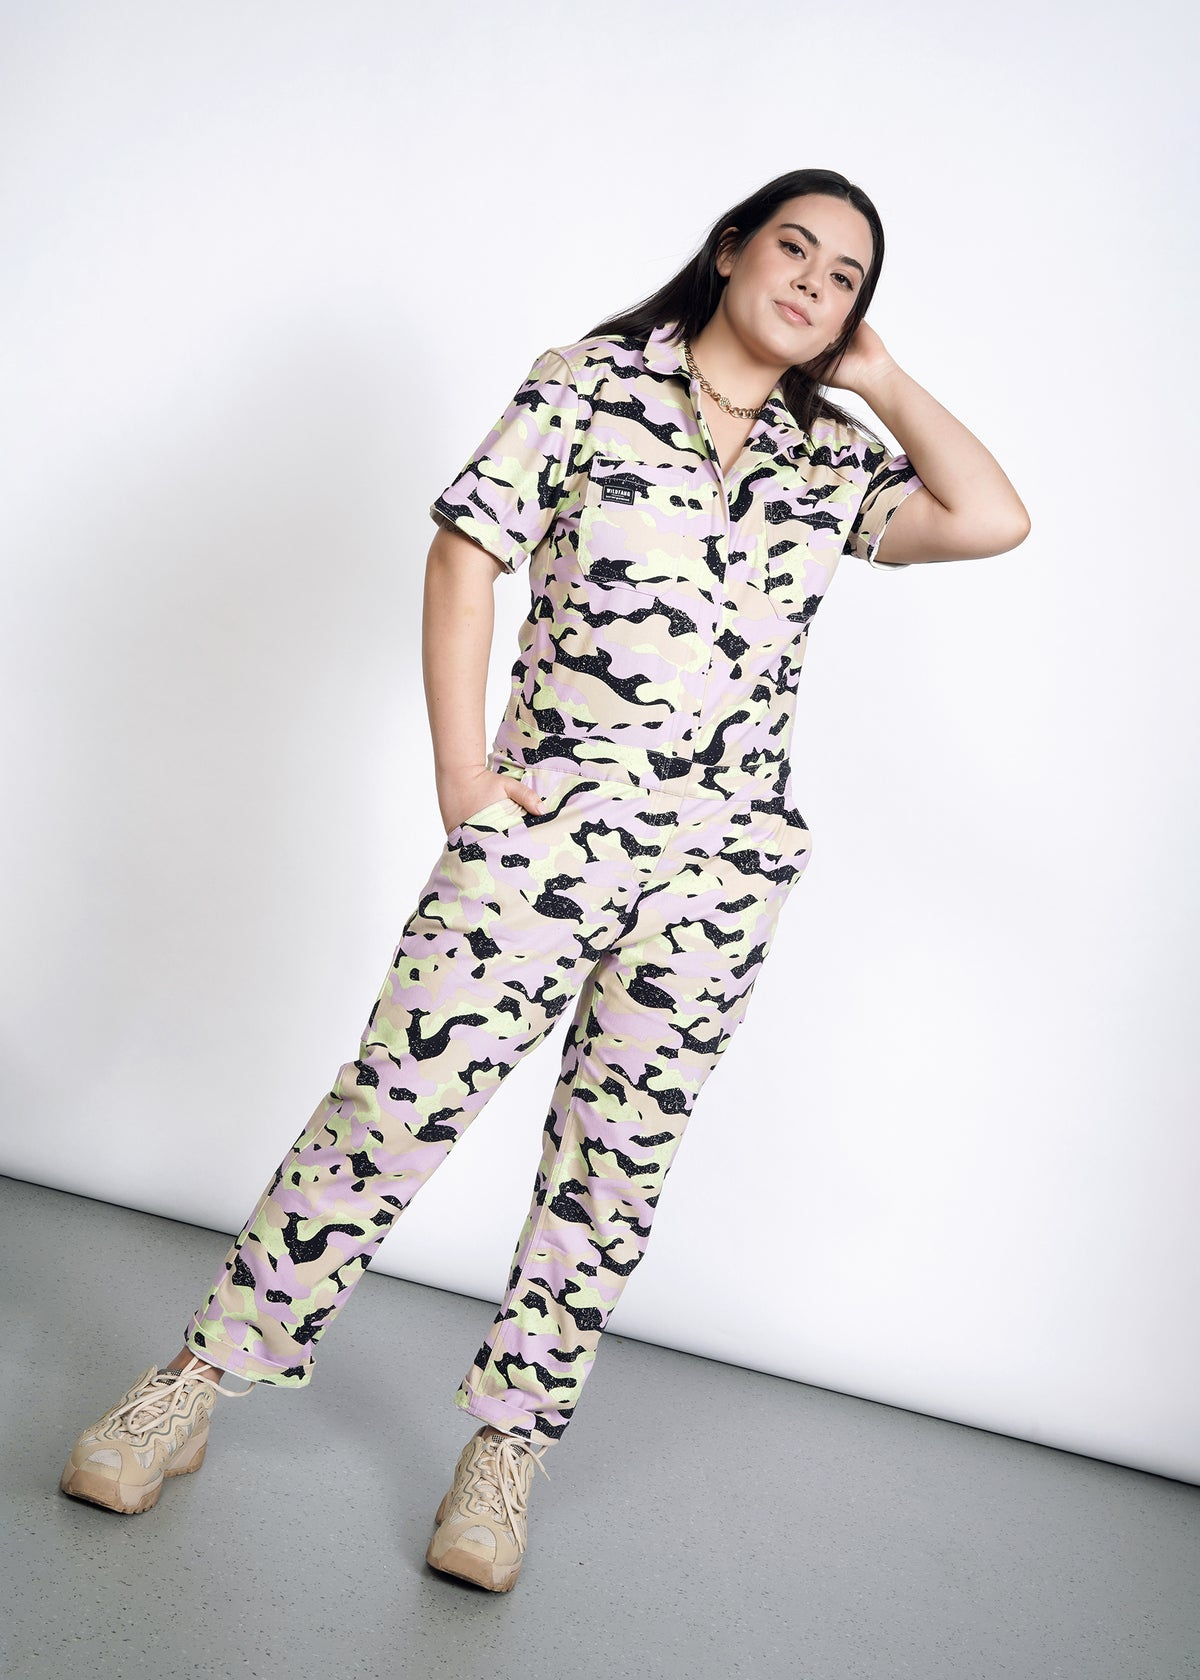 Model wearing lavender, celadon, black, and tan camouflage all over print short sleeve coverall jumpsuit in size L, standing with one hand in pocket